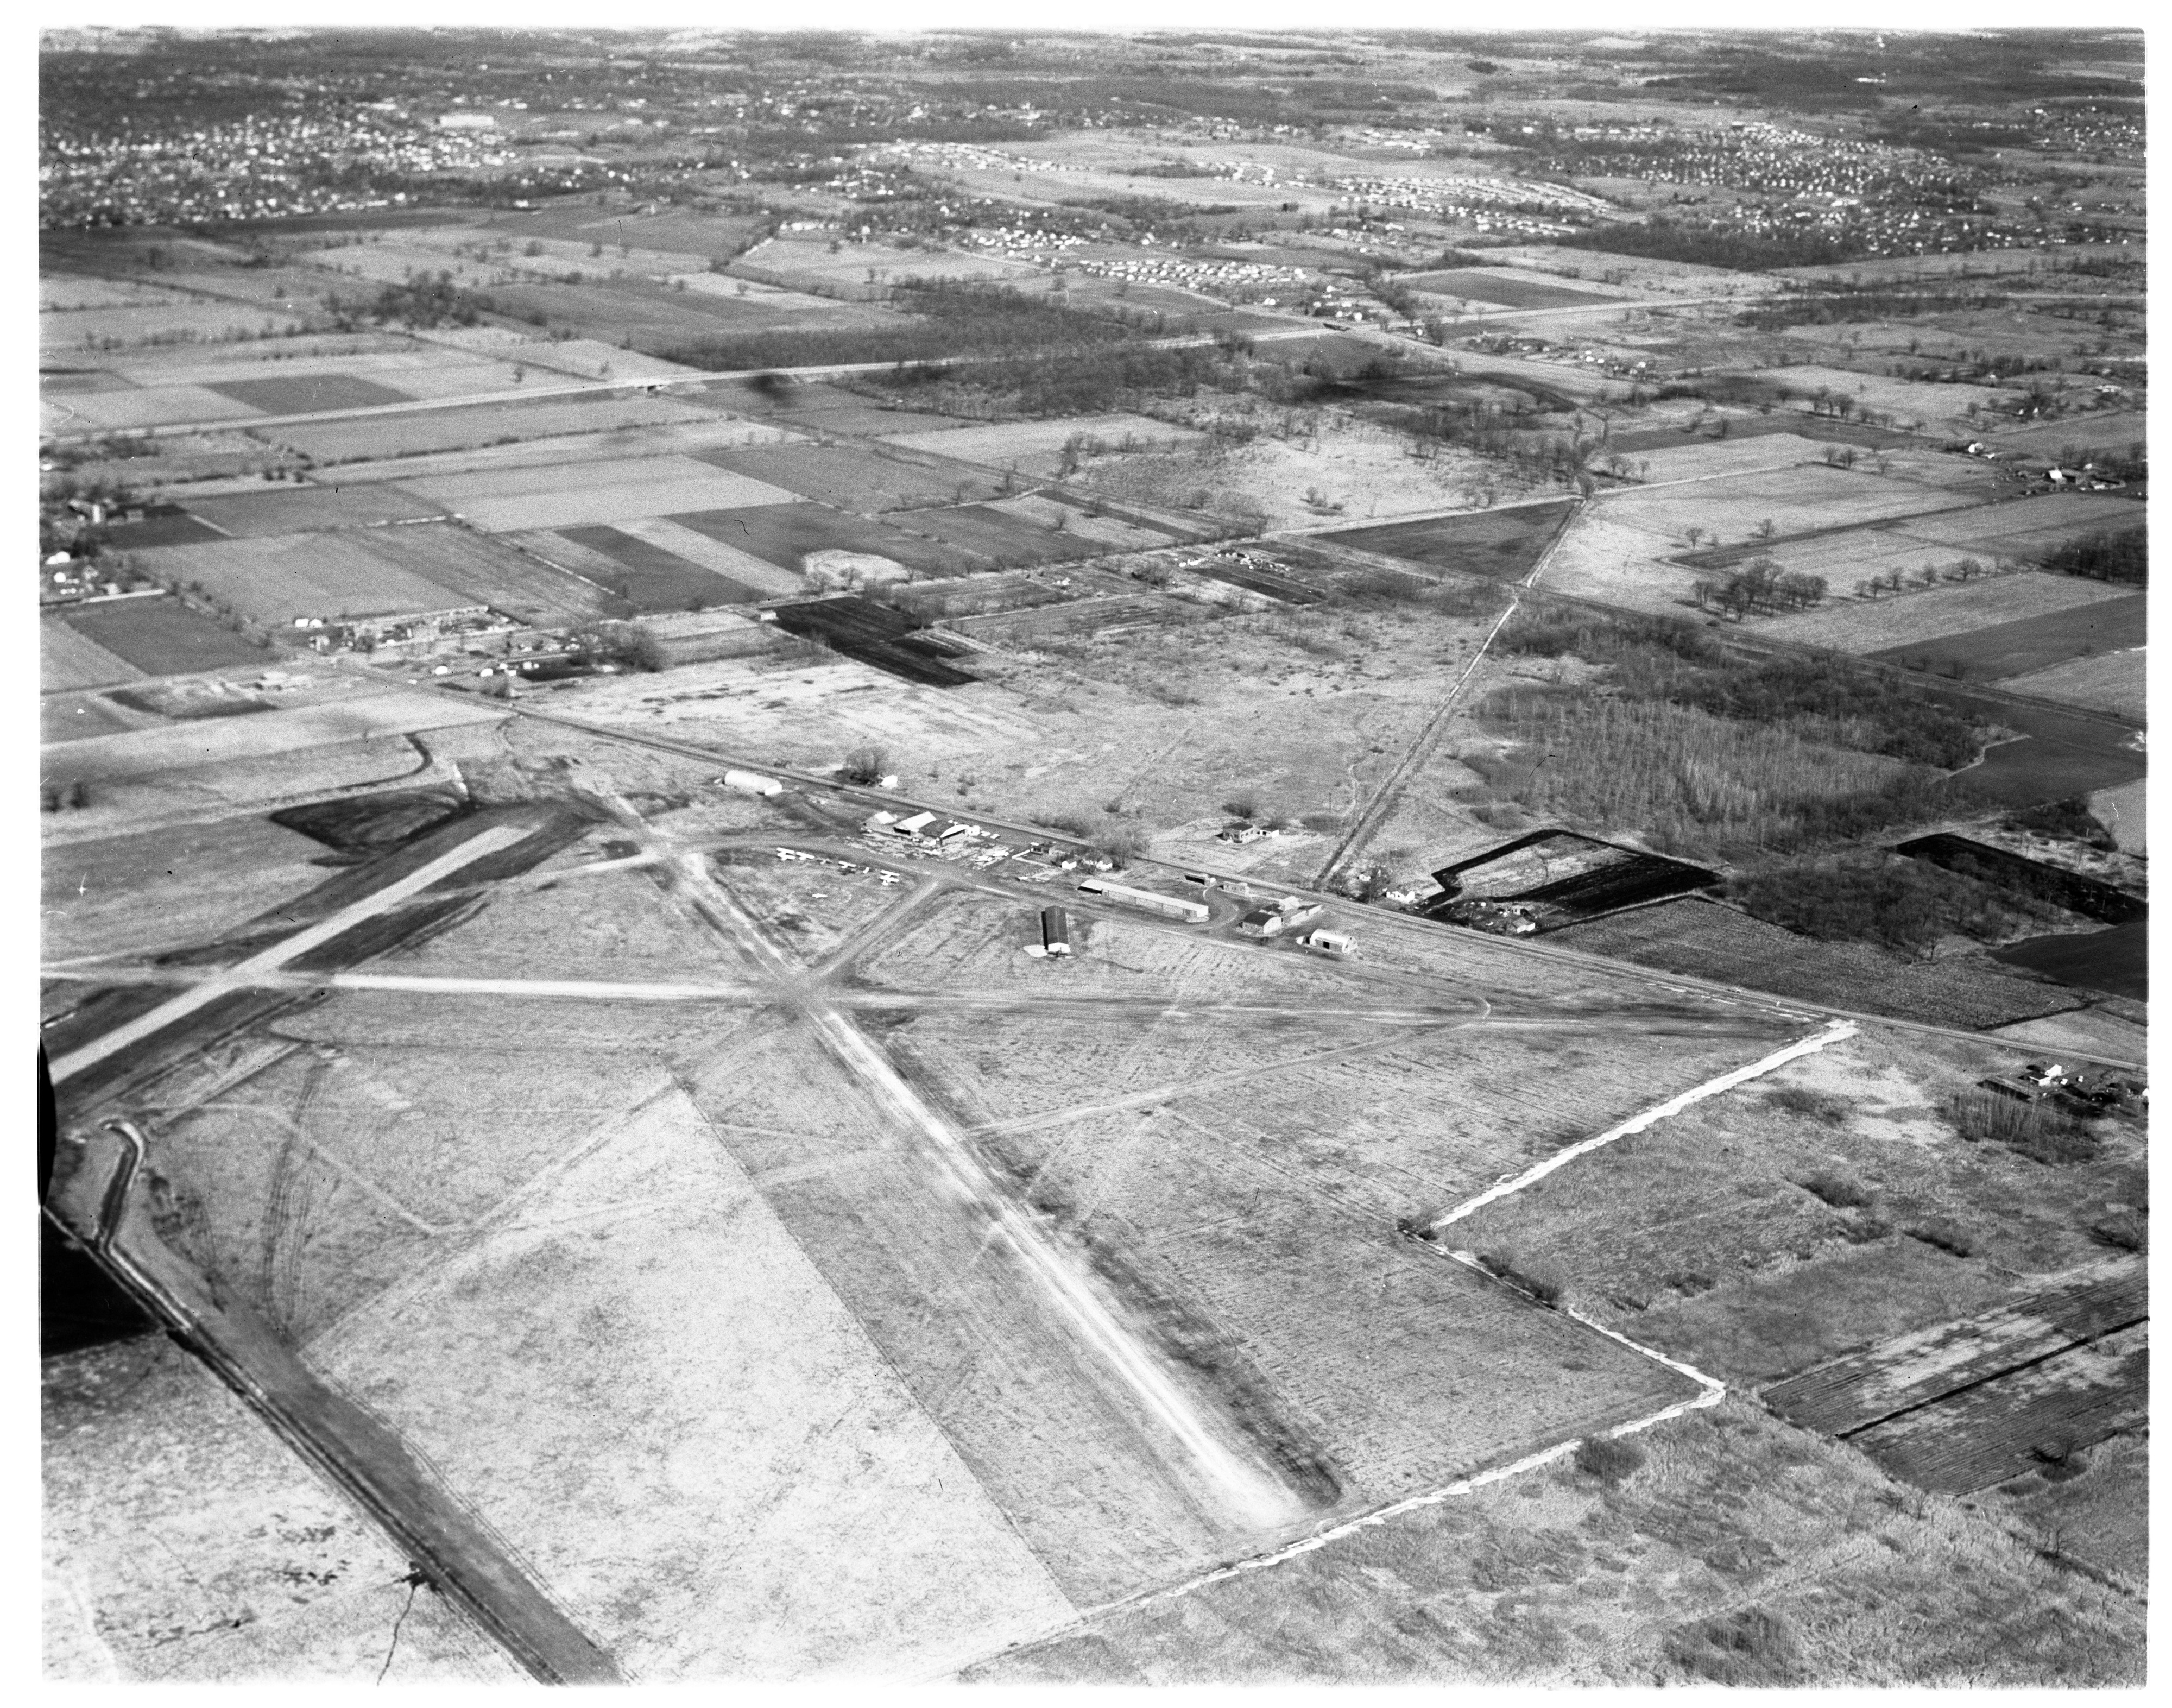 Aerial Photograph of Ann Arbor Airport, February 1958 image